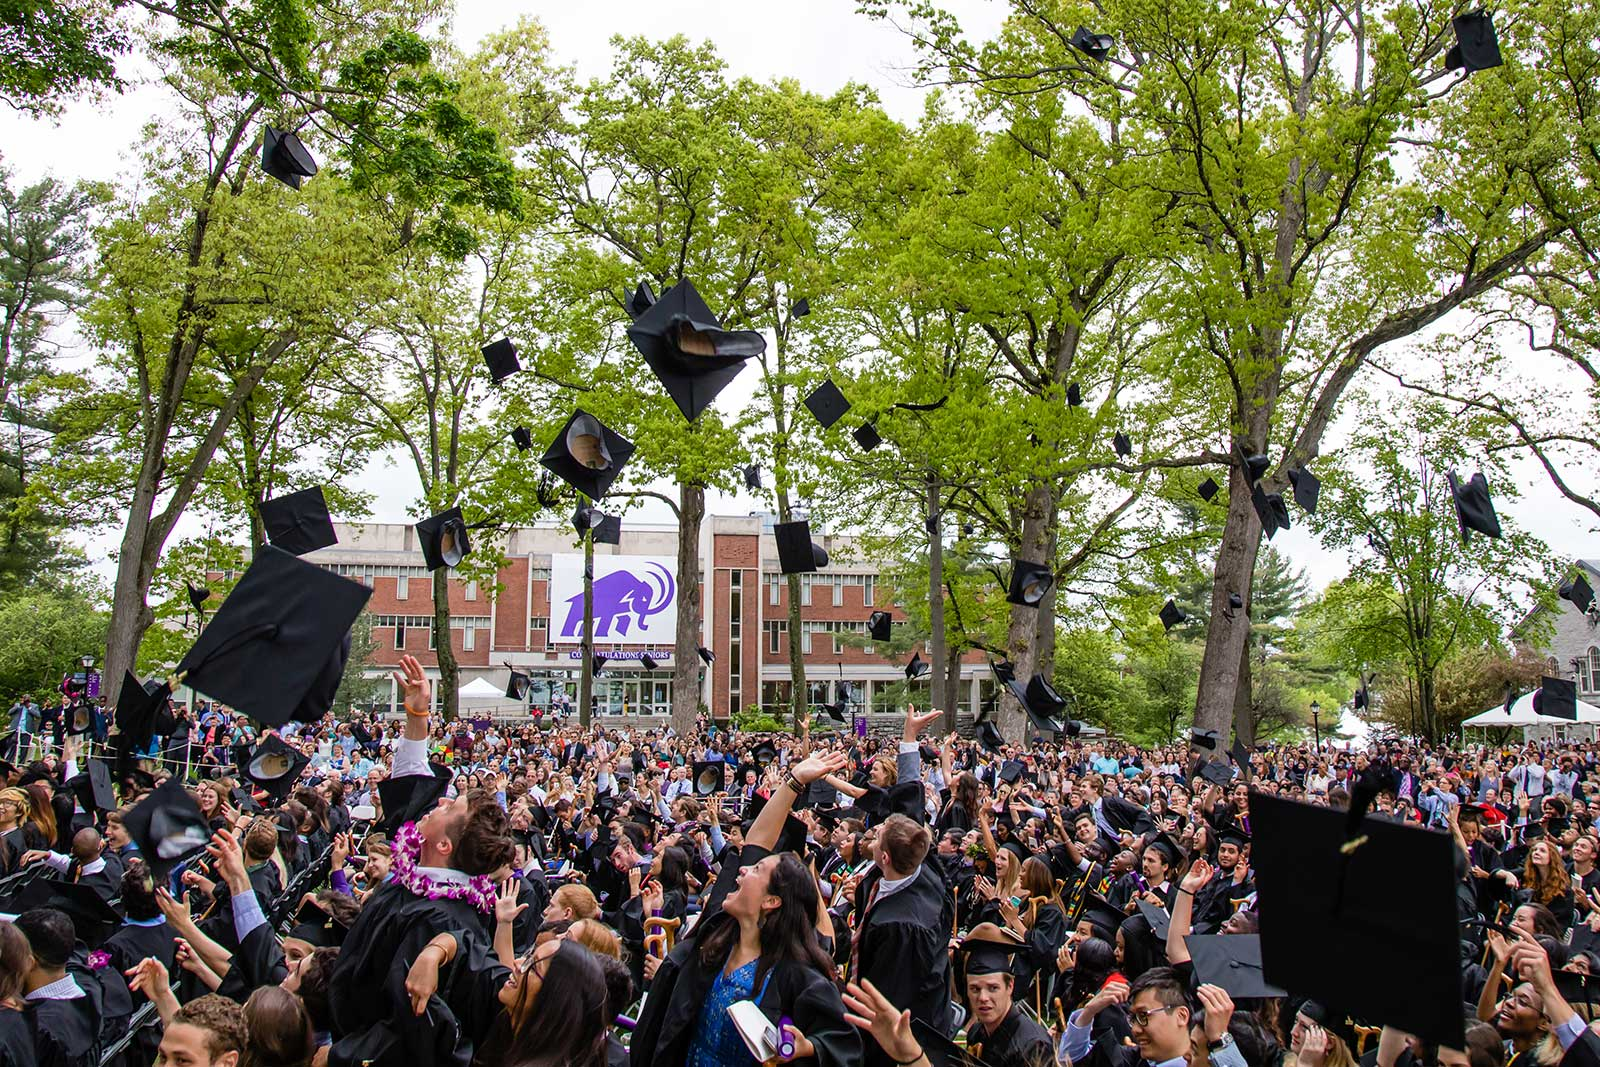 Graduates tossing their caps in the air in celebration